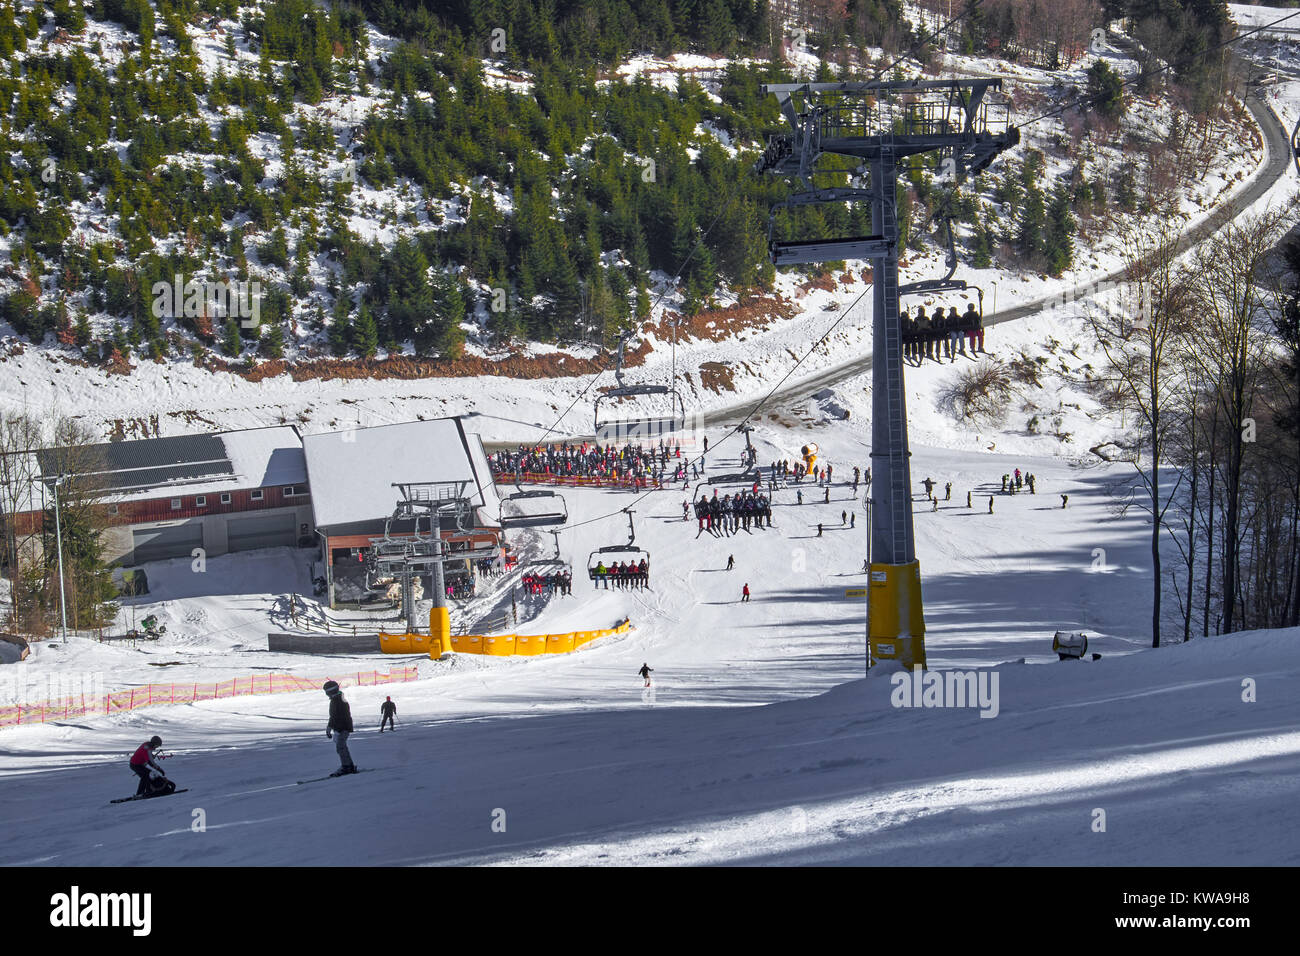 WINTERBERG, GERMANY - FEBRUARY 14, 2017: Typical piste with chairlift and people doing slalom at Ski Carousel Winterberg - Stock Image